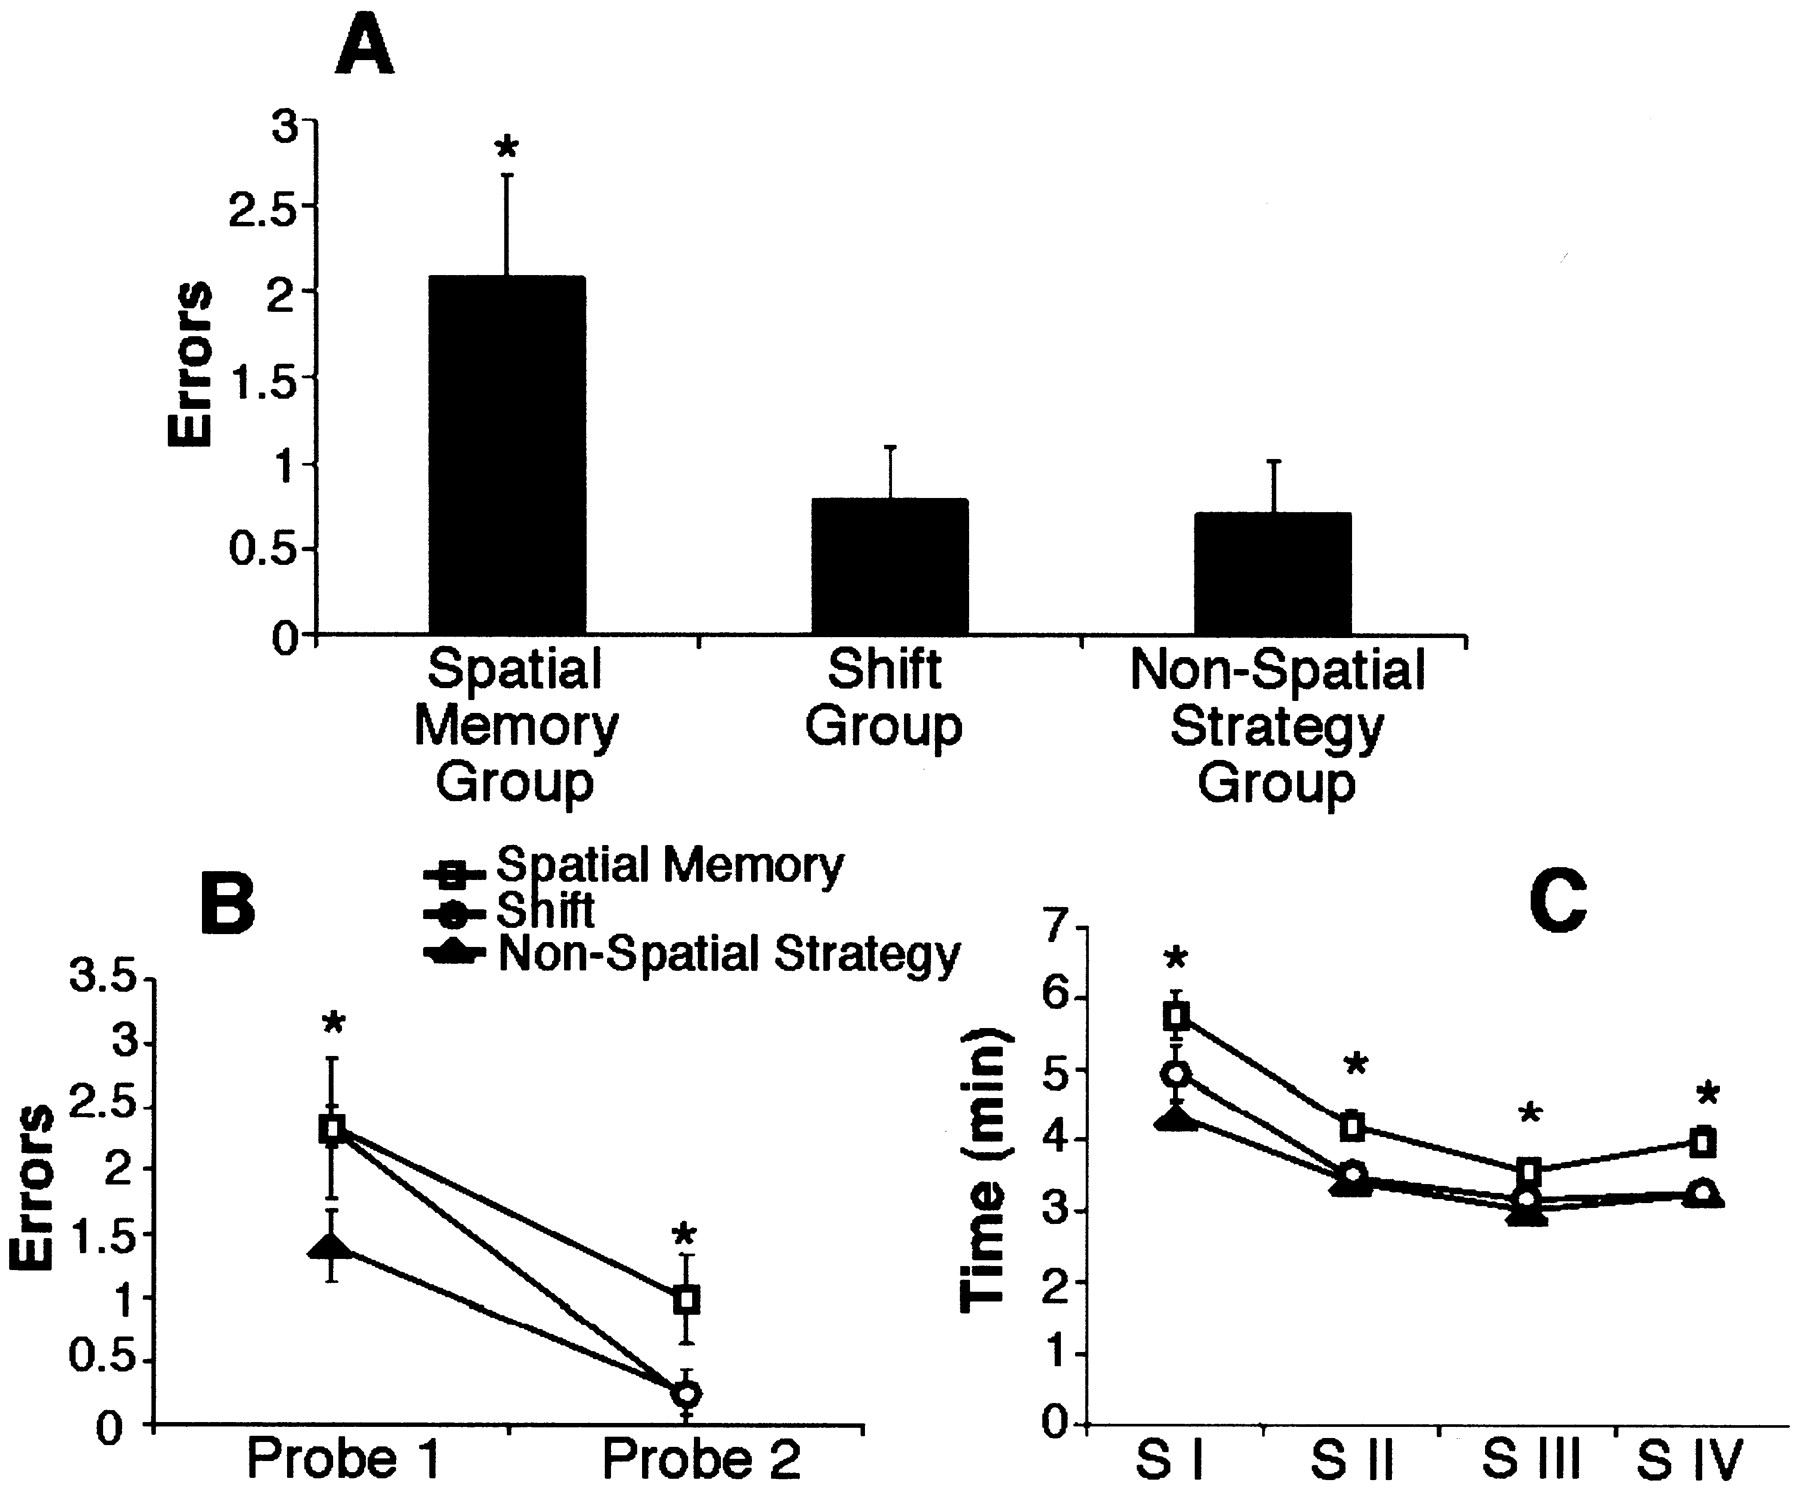 Cognitive Strategies Dependent on the Hippocampus and